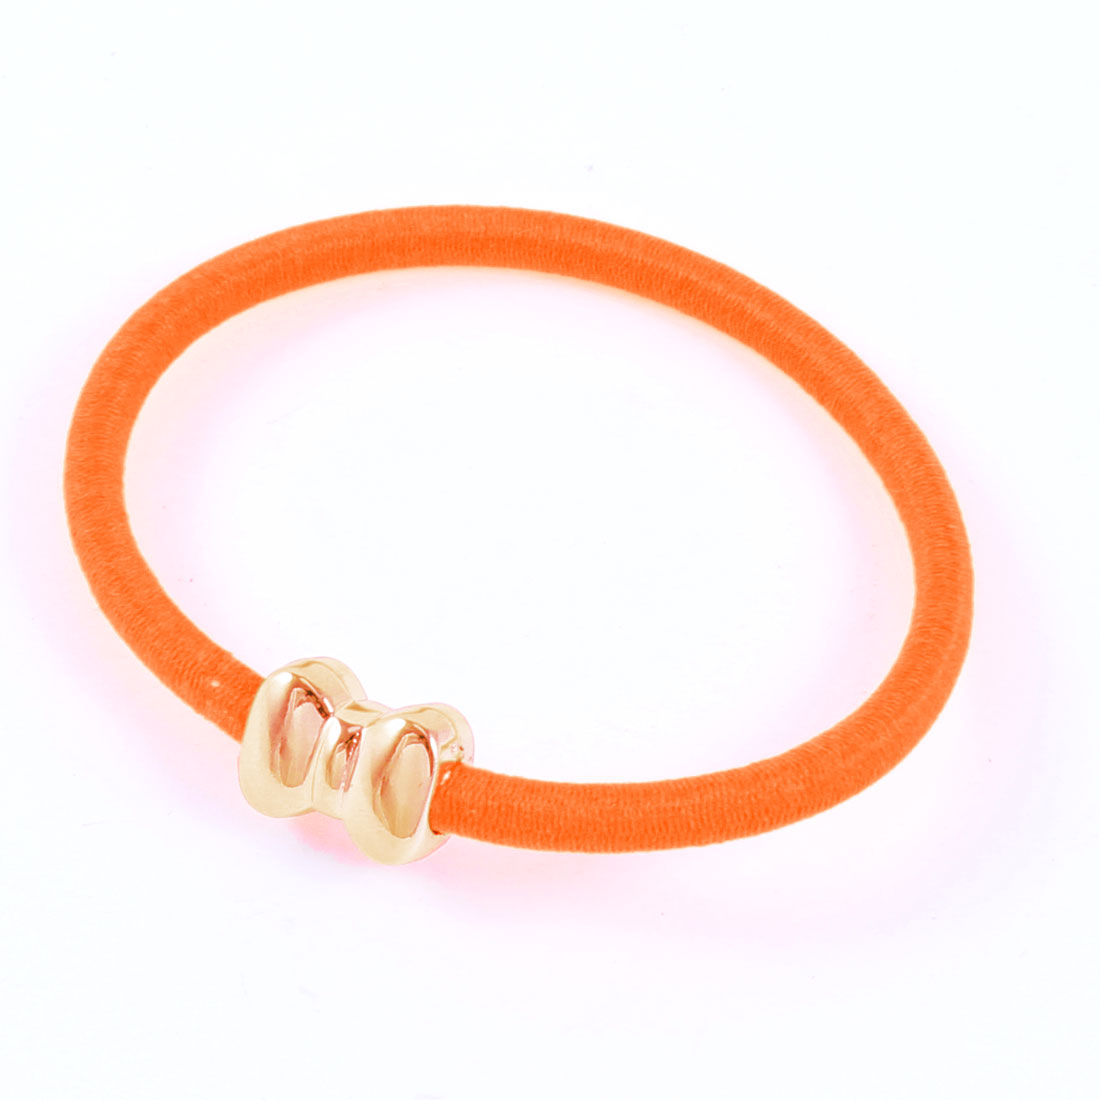 Bowknot Designed Stretchy Hair Tie Band Orange for Ladies